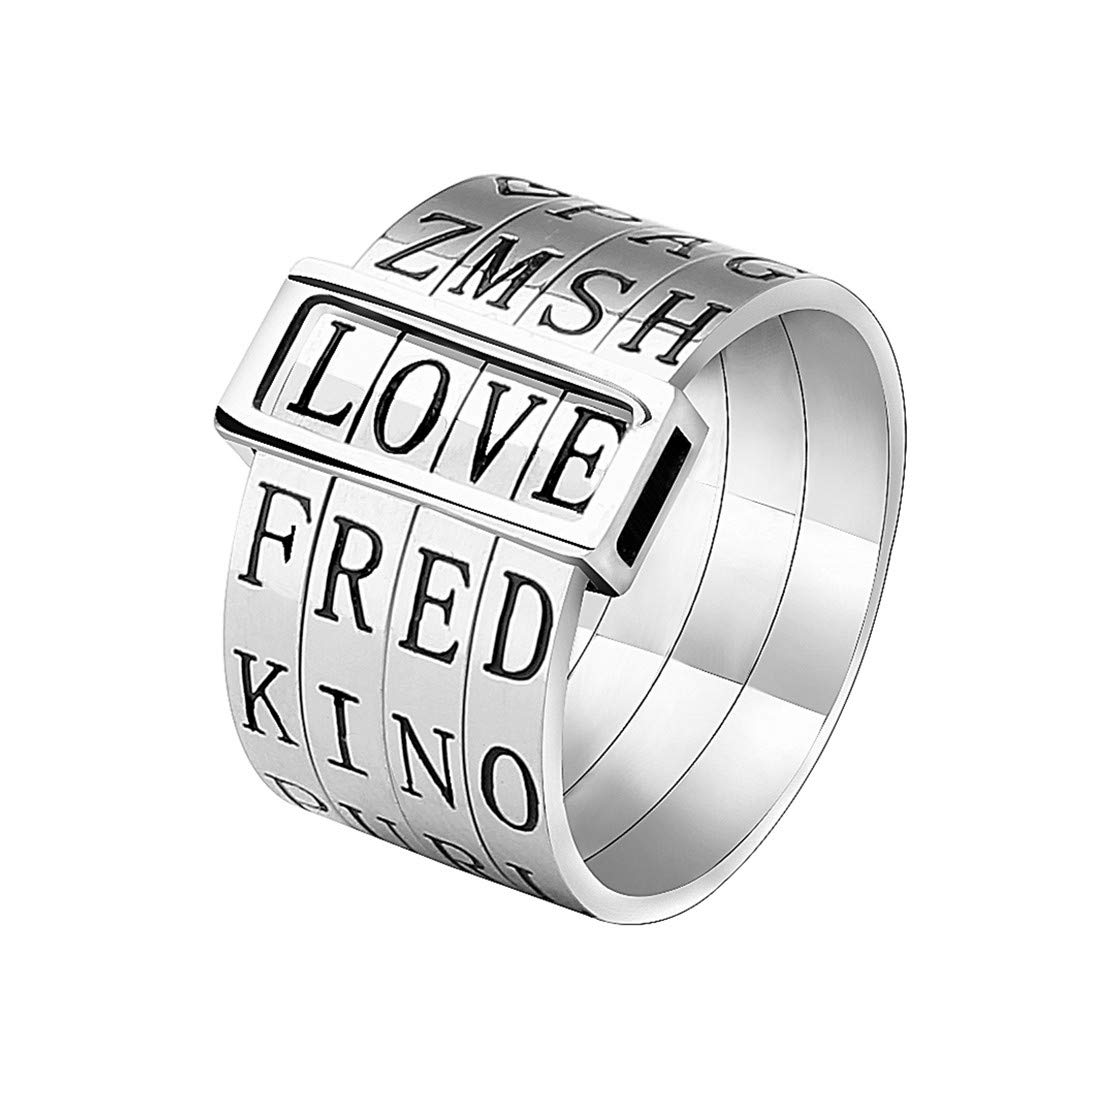 YWJ Unique Jewelry Titanium Wide Band Engraved Spinner Ring Love Gift for Women Men Kids